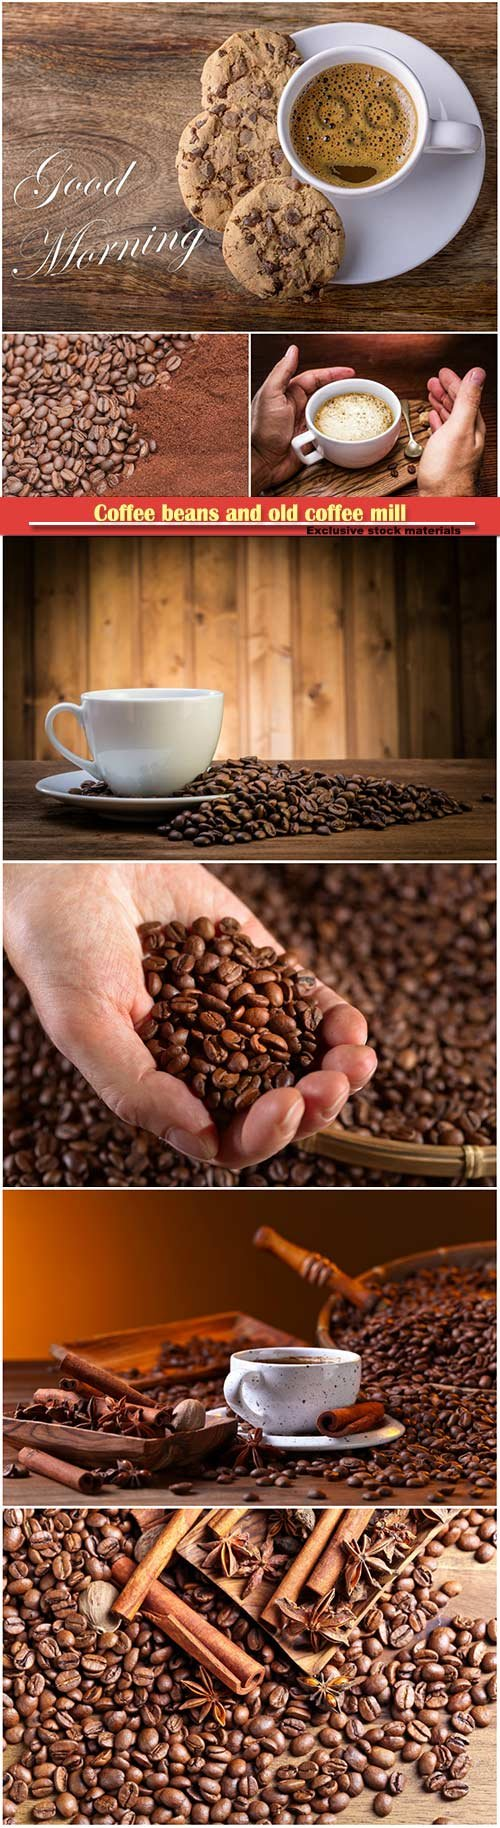 Coffee beans and old coffee mill